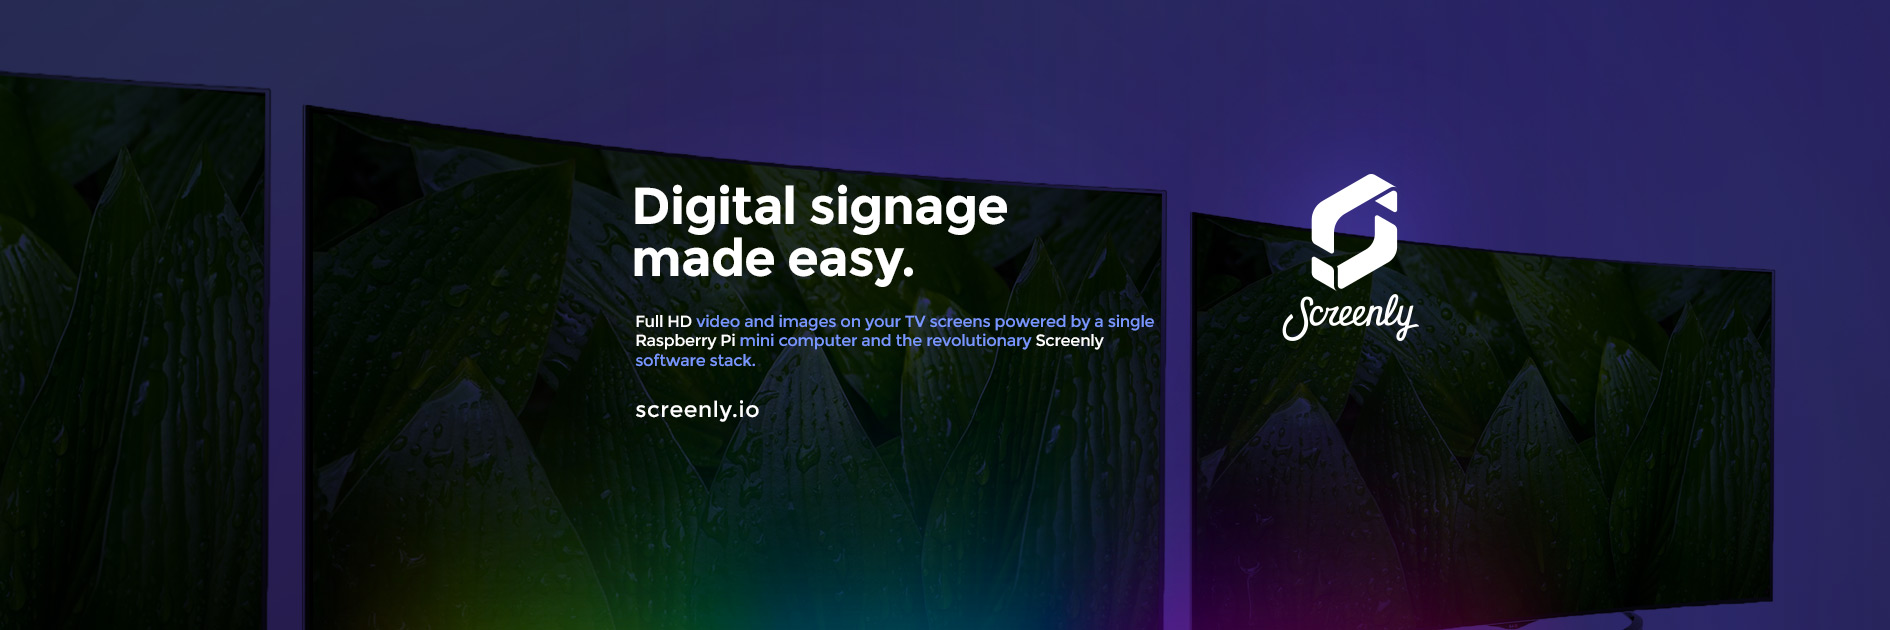 Screenly is digital signage mad easy